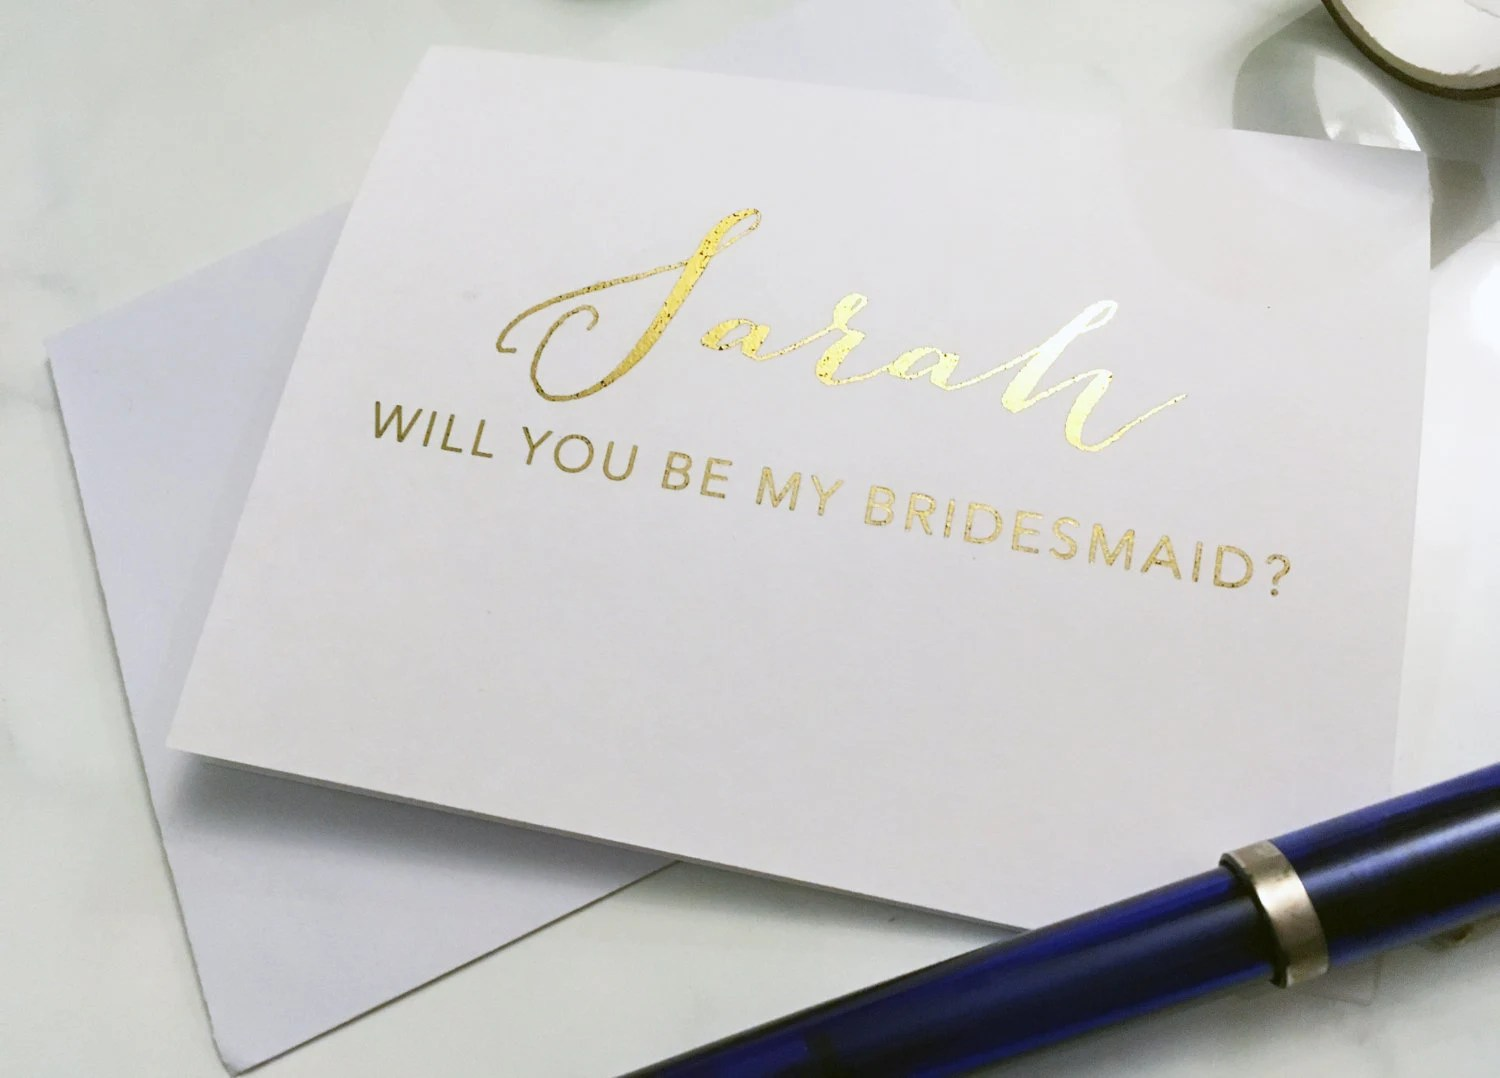 Will you be my bridesmaid maid of honor matron of honor  image 1